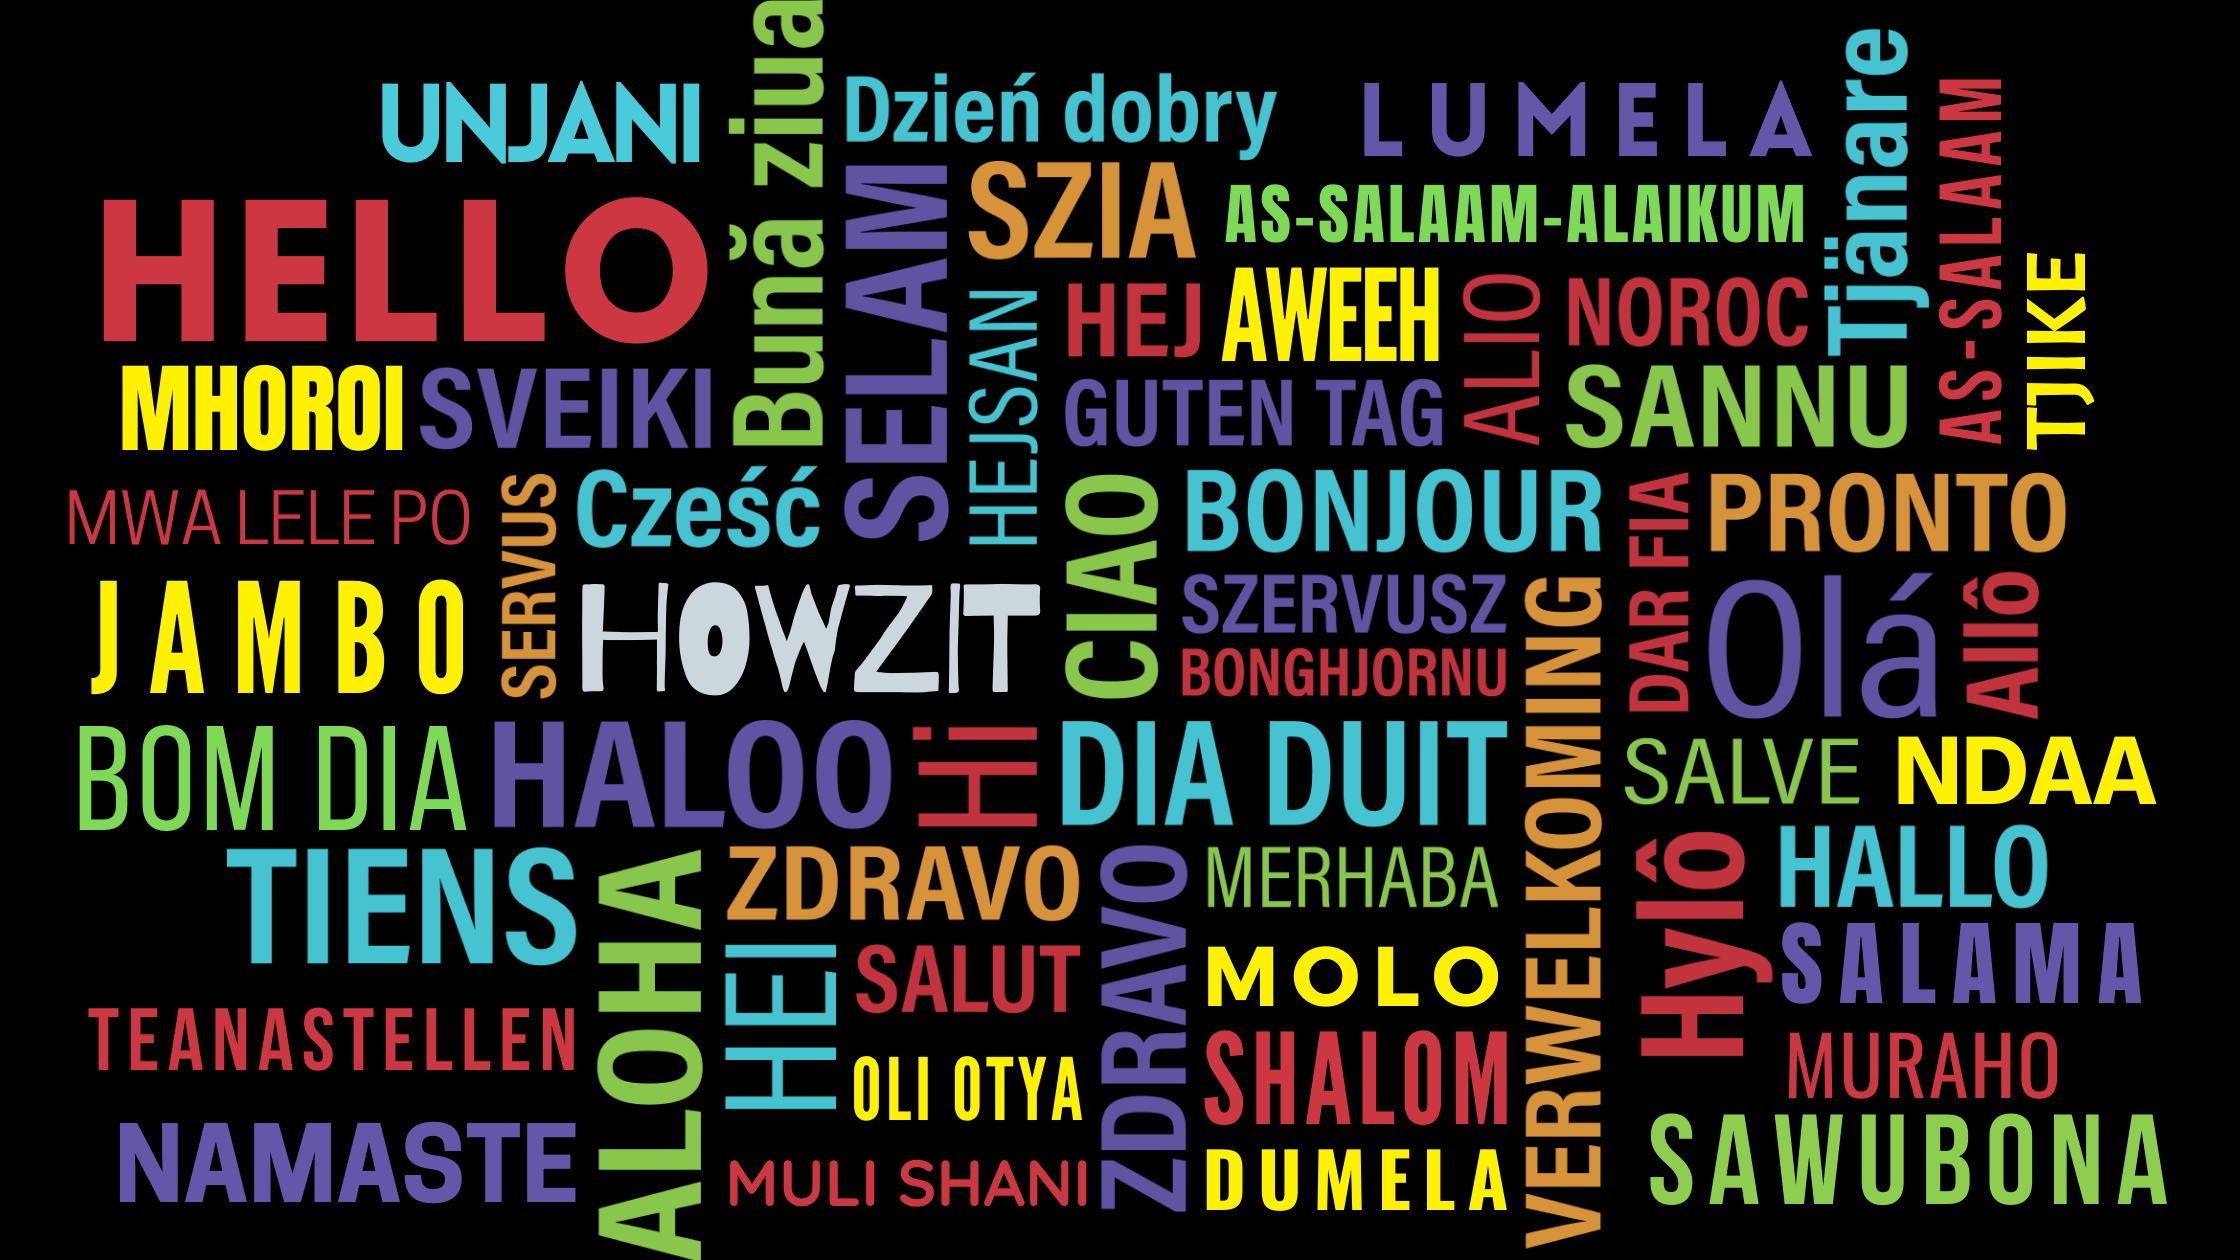 Wordcloud of Hello in different languages